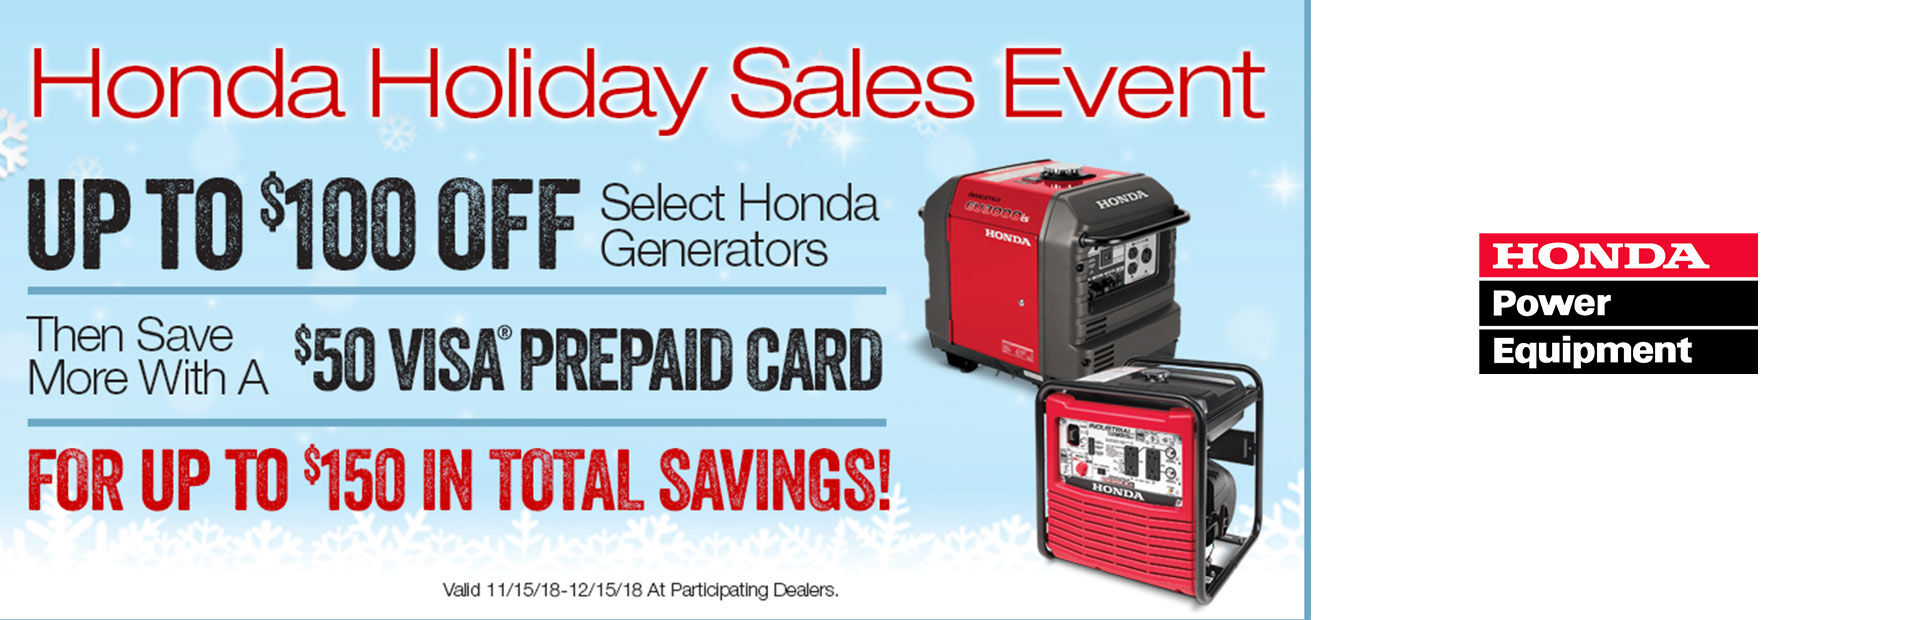 Honda Power Equipment